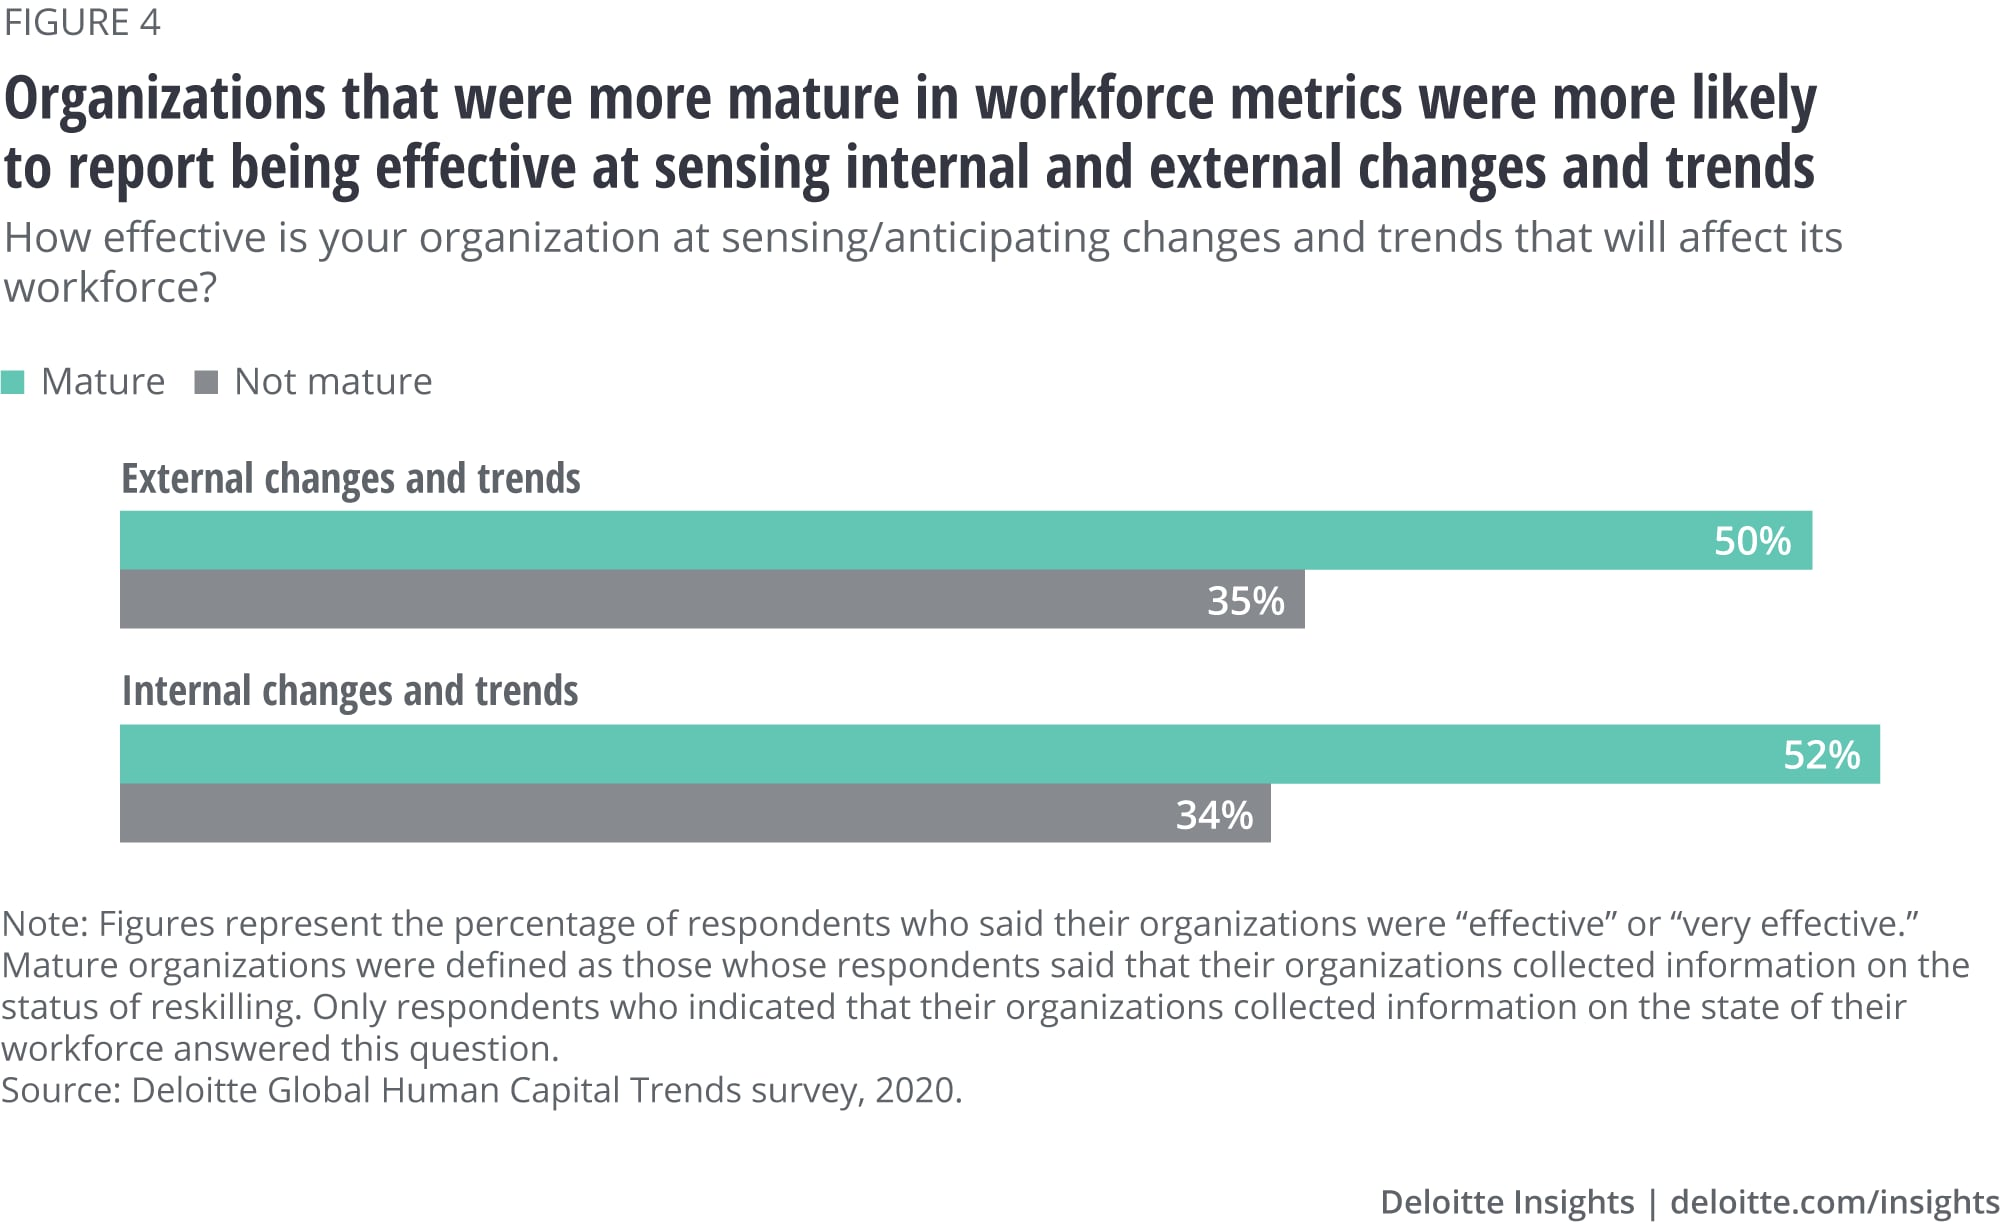 Organizations that were more mature in workforce metrics were more likely to report being effective at sensing internal and external changes and trends